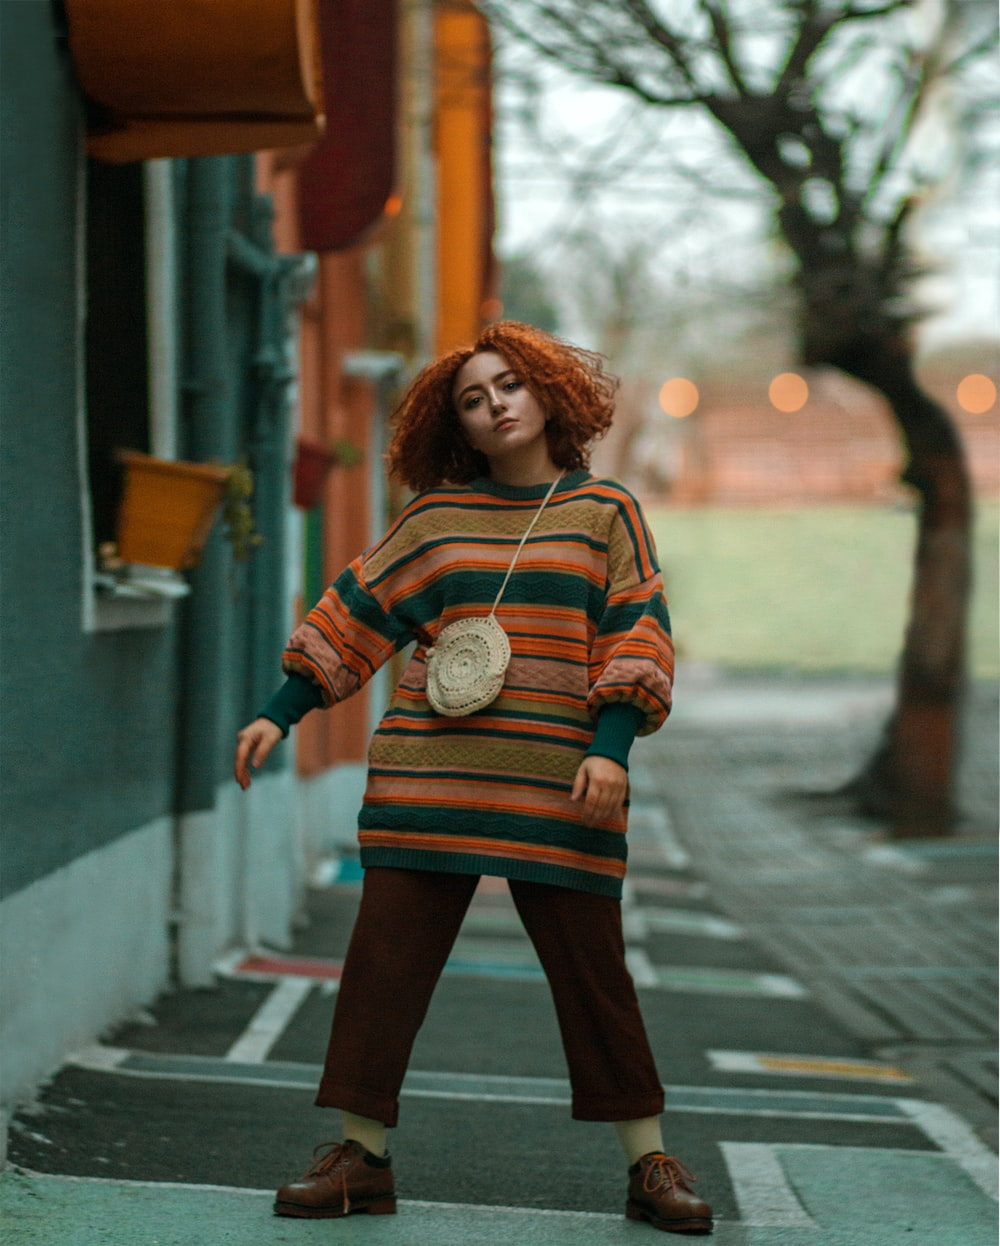 woman in white and brown striped long sleeve shirt and black skirt standing on sidewalk during